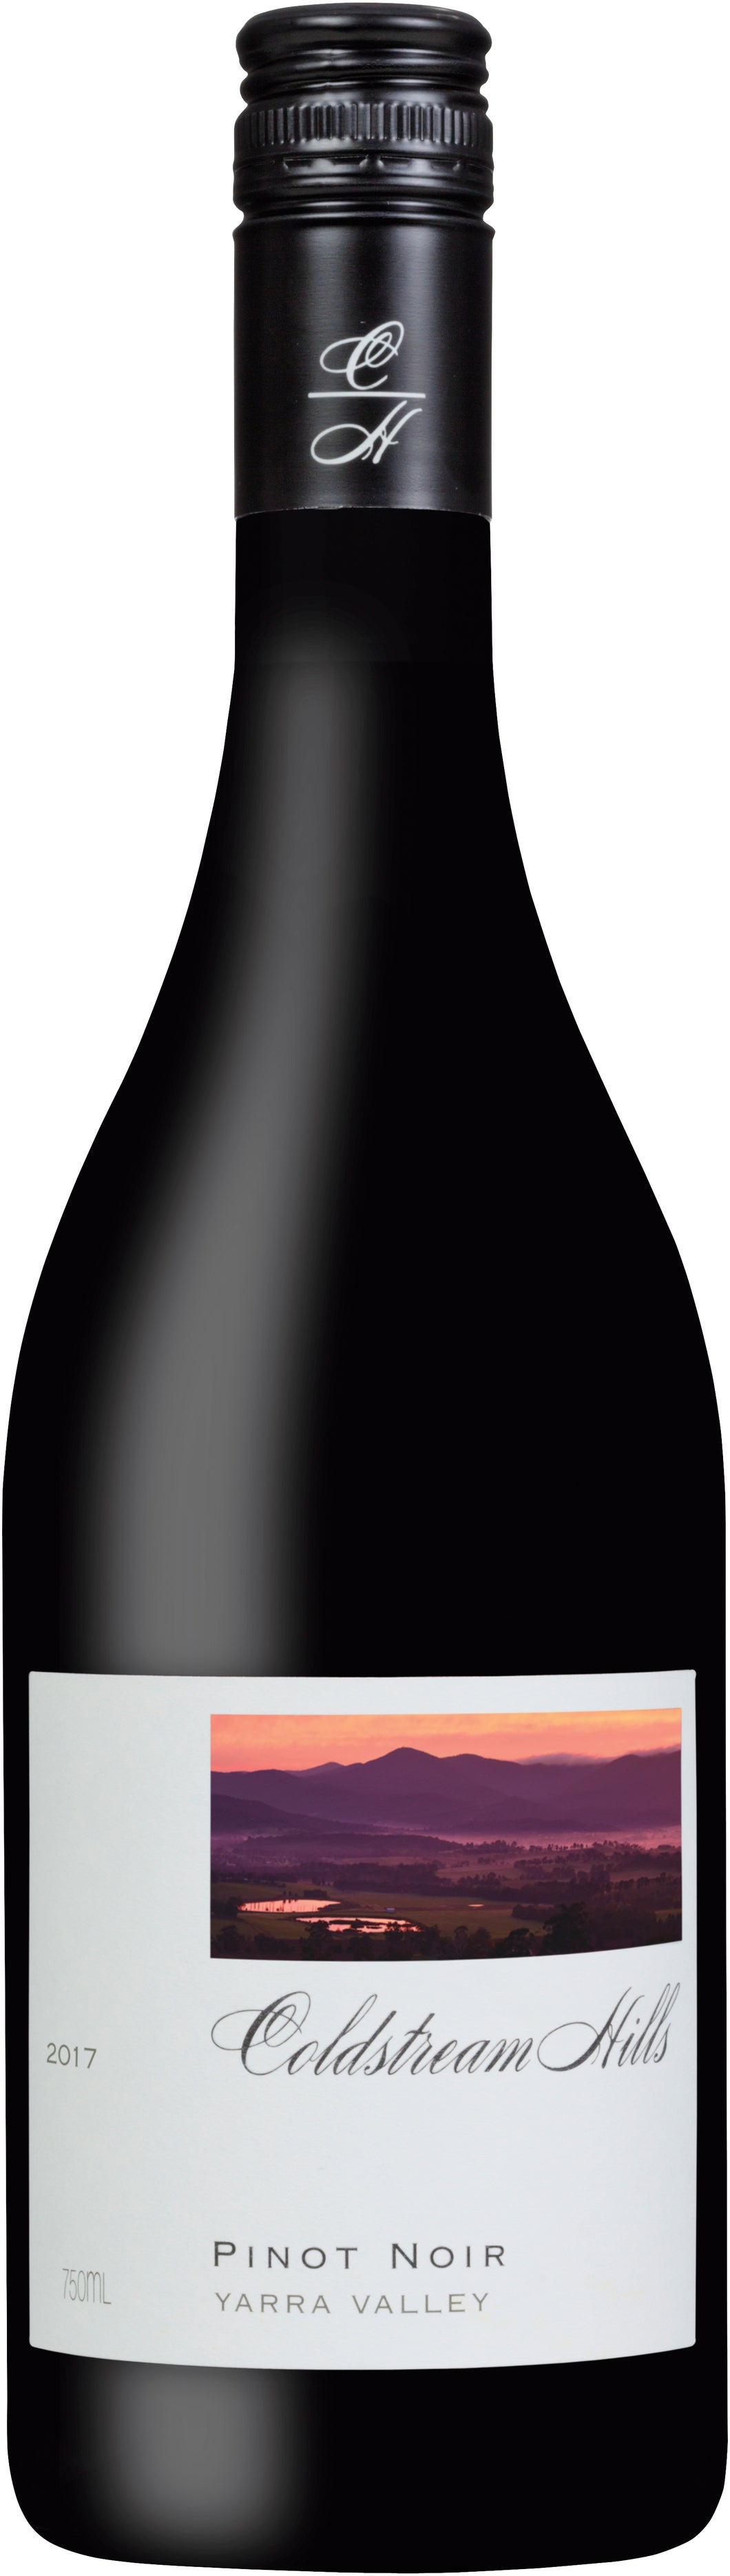 $162.00 per case (6) delivered - COLDSTREAM HILLS VARIETALS Pinot Noir 2019